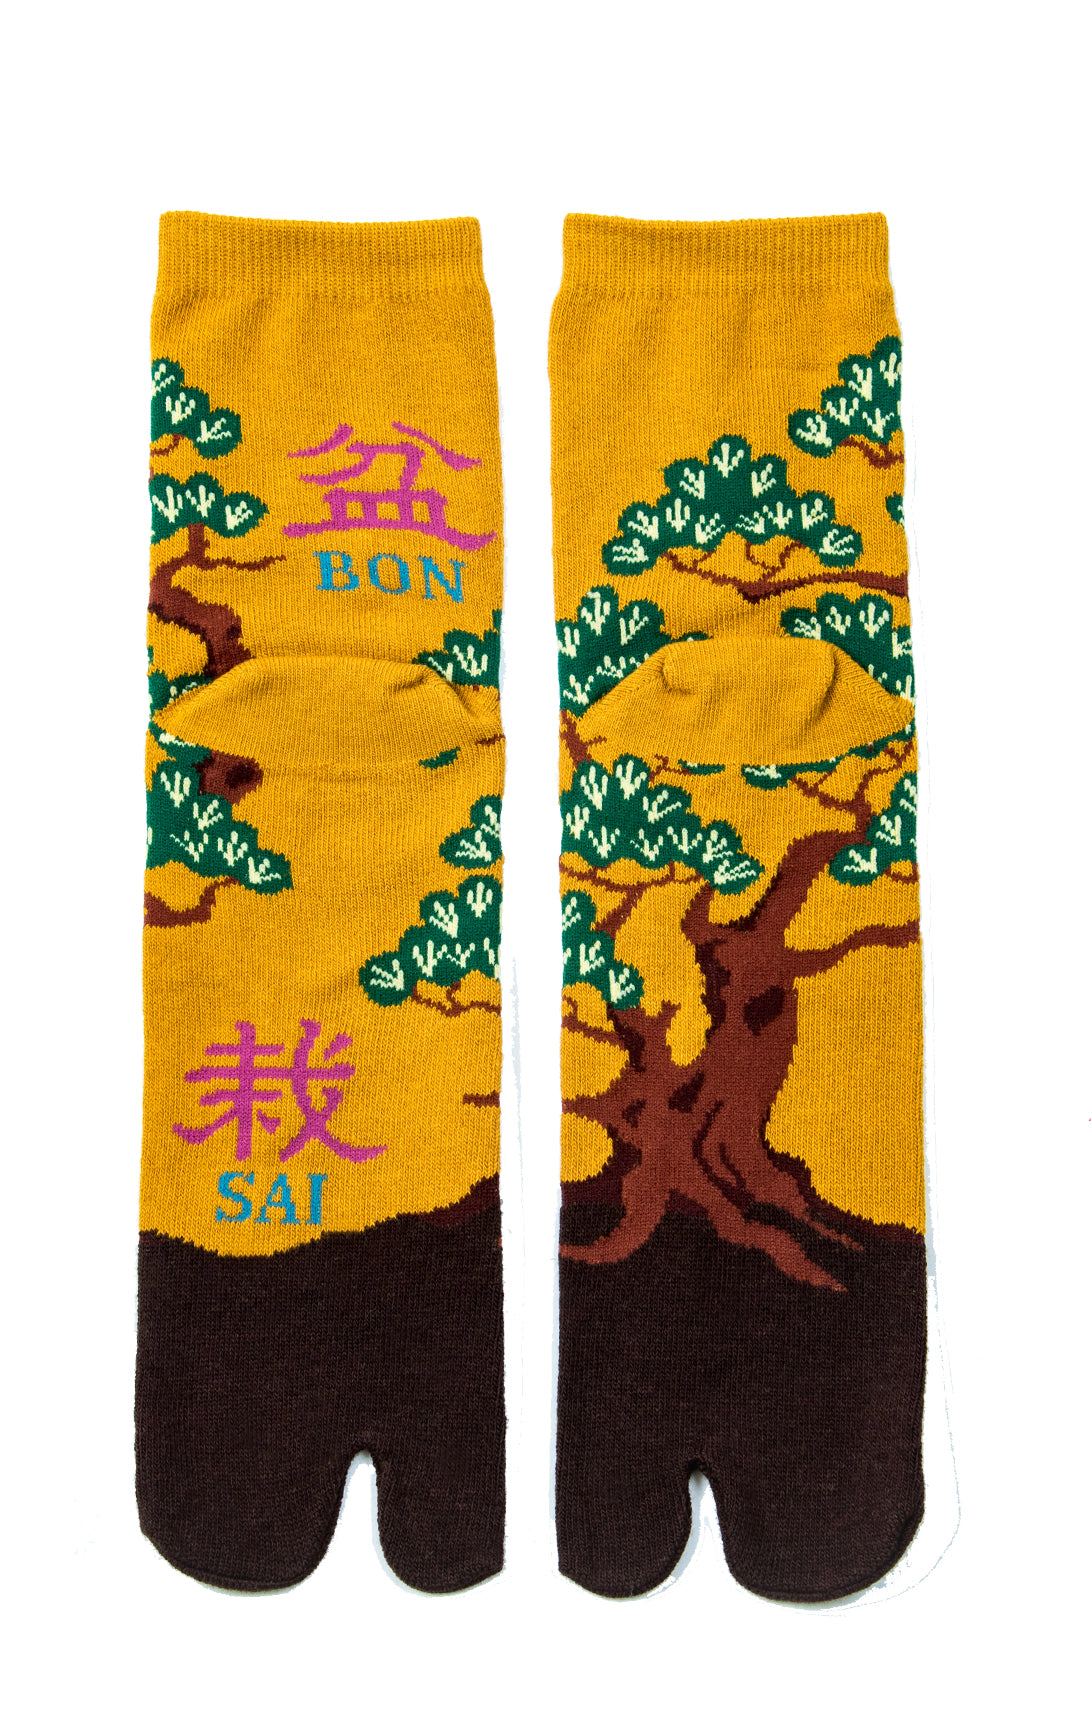 BONSAI TABI SOCKS